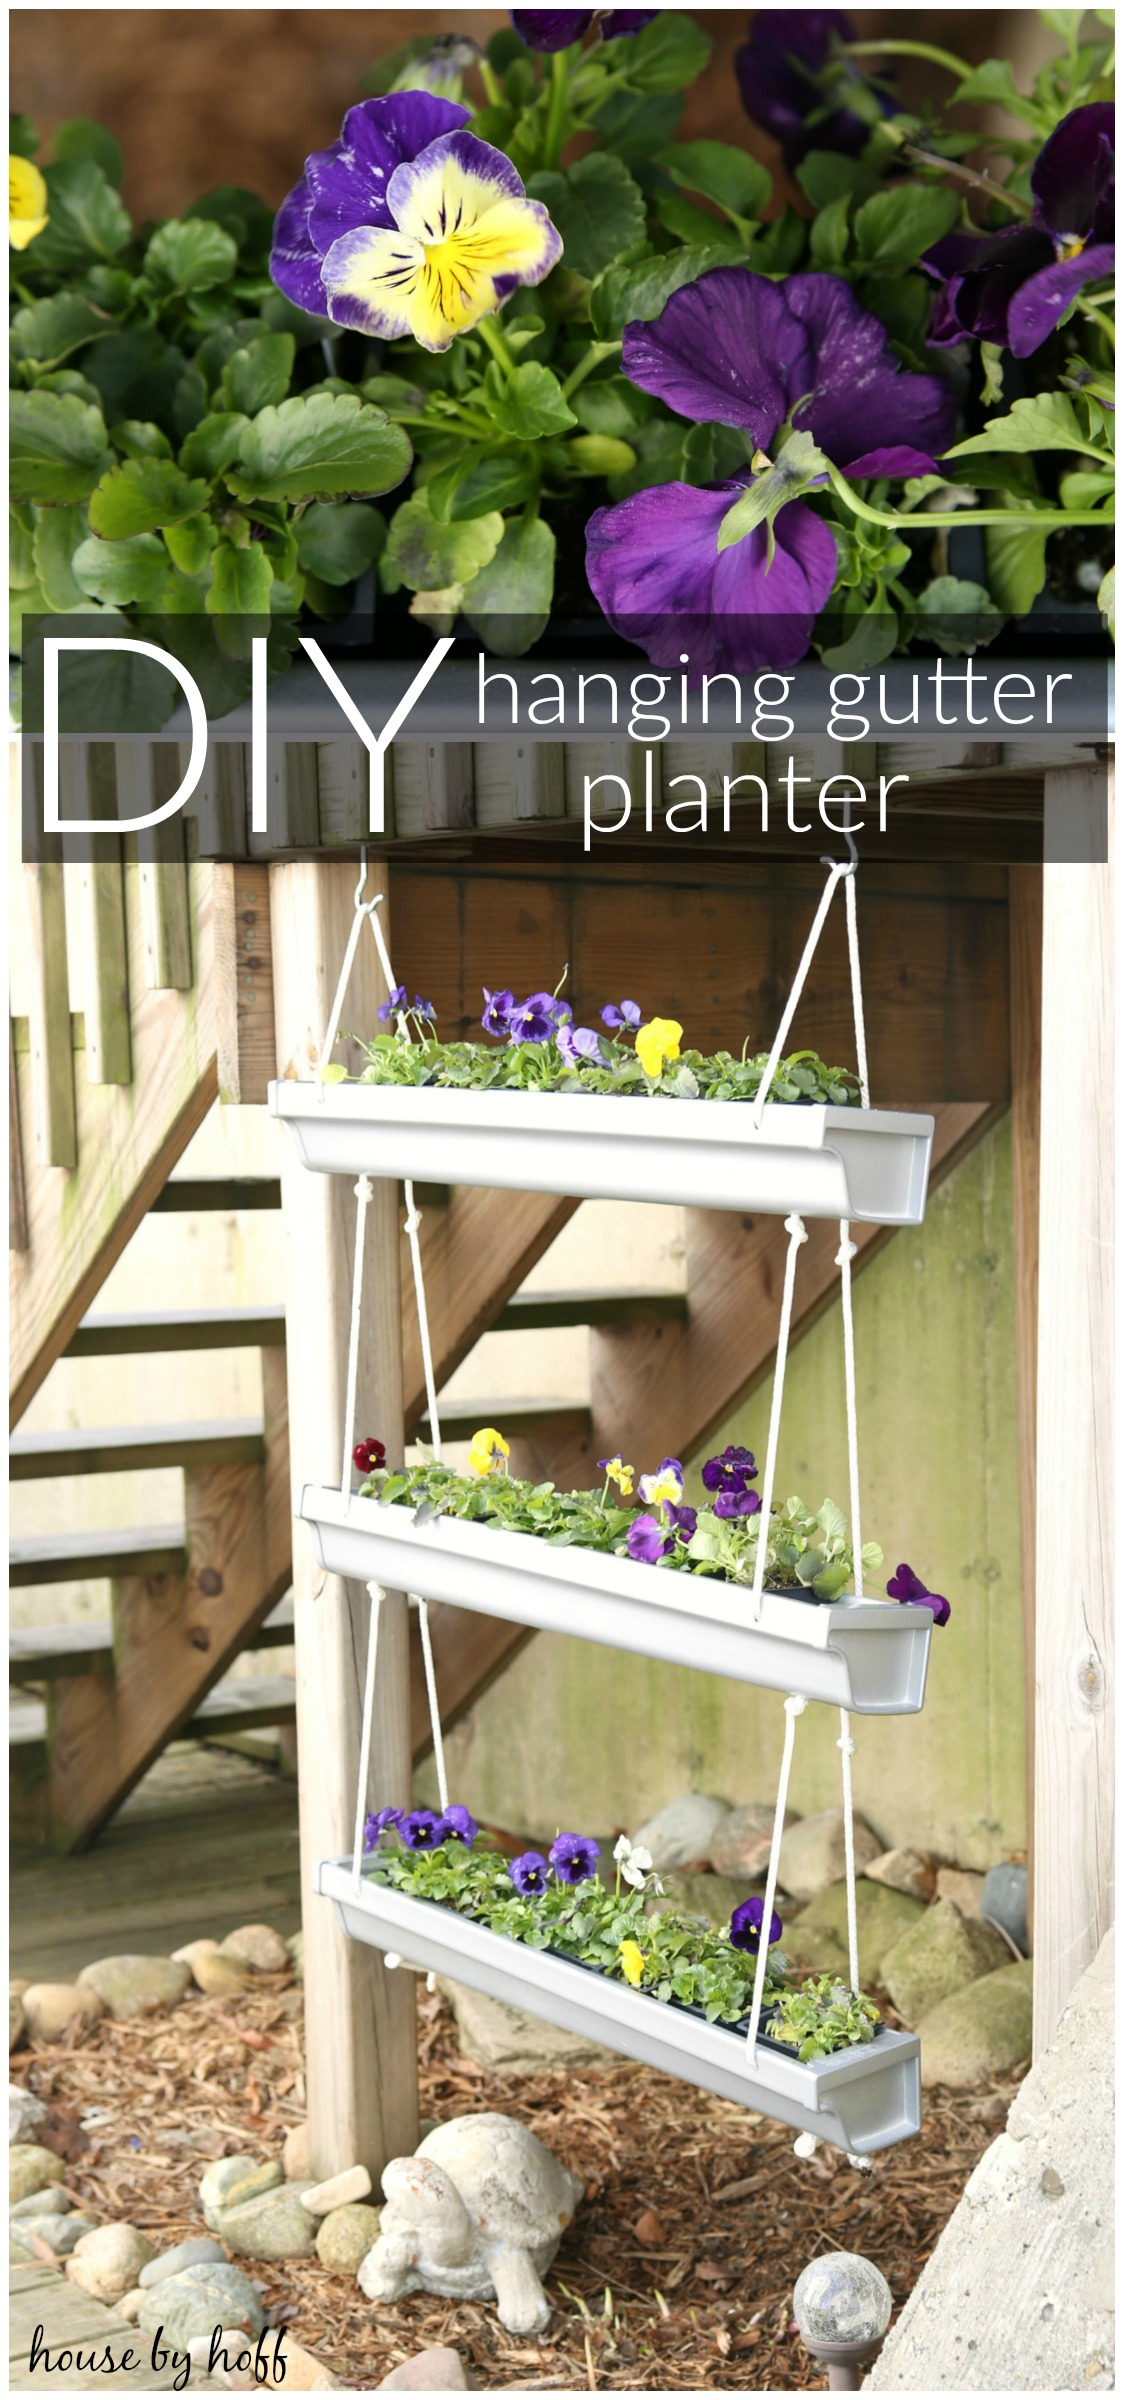 Diy Hanging Gutter Planter House By Hoff